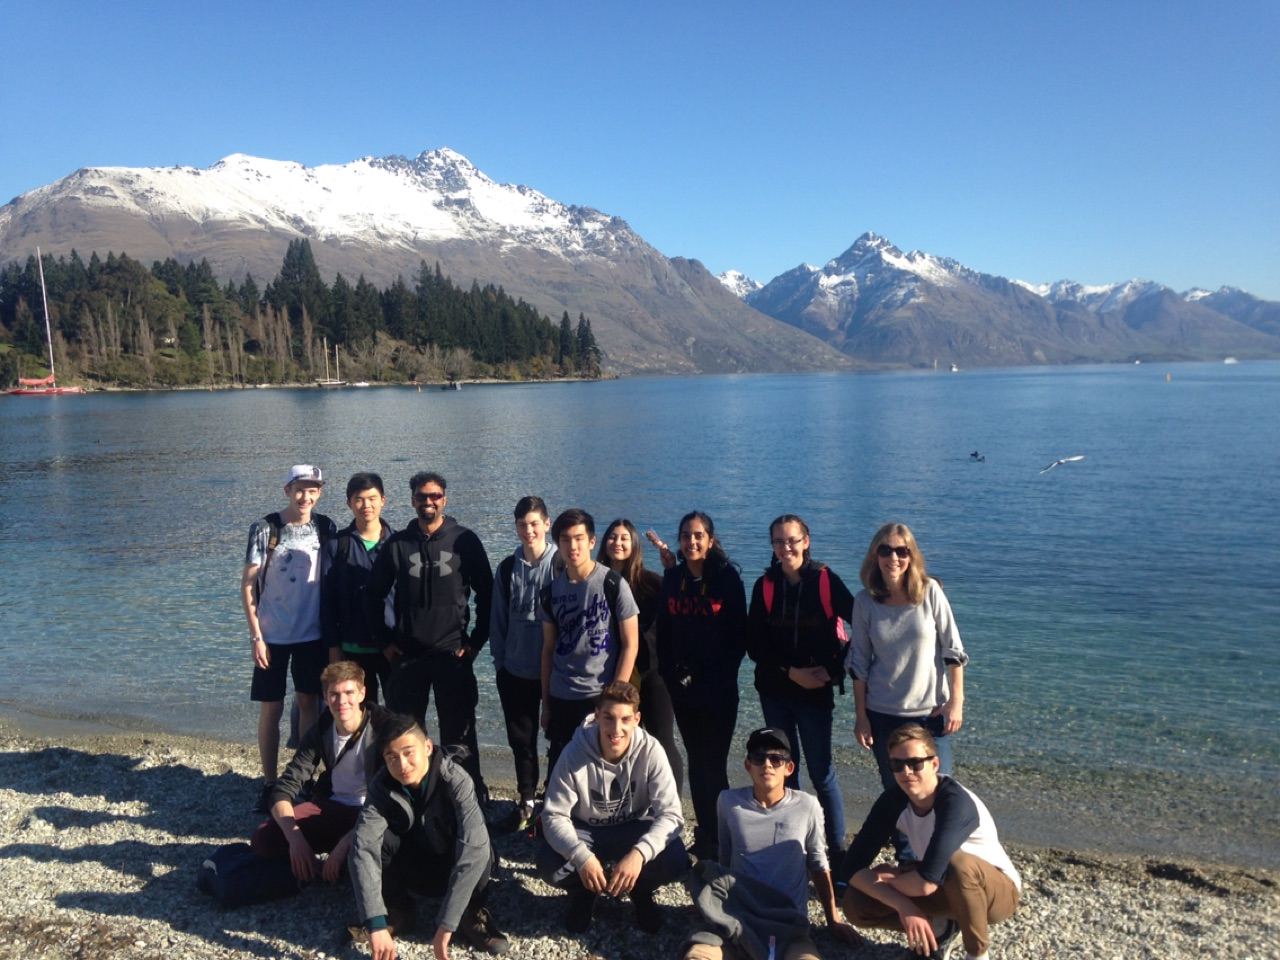 Duke of Edinburgh Silver Expedition – New Zealand Trip